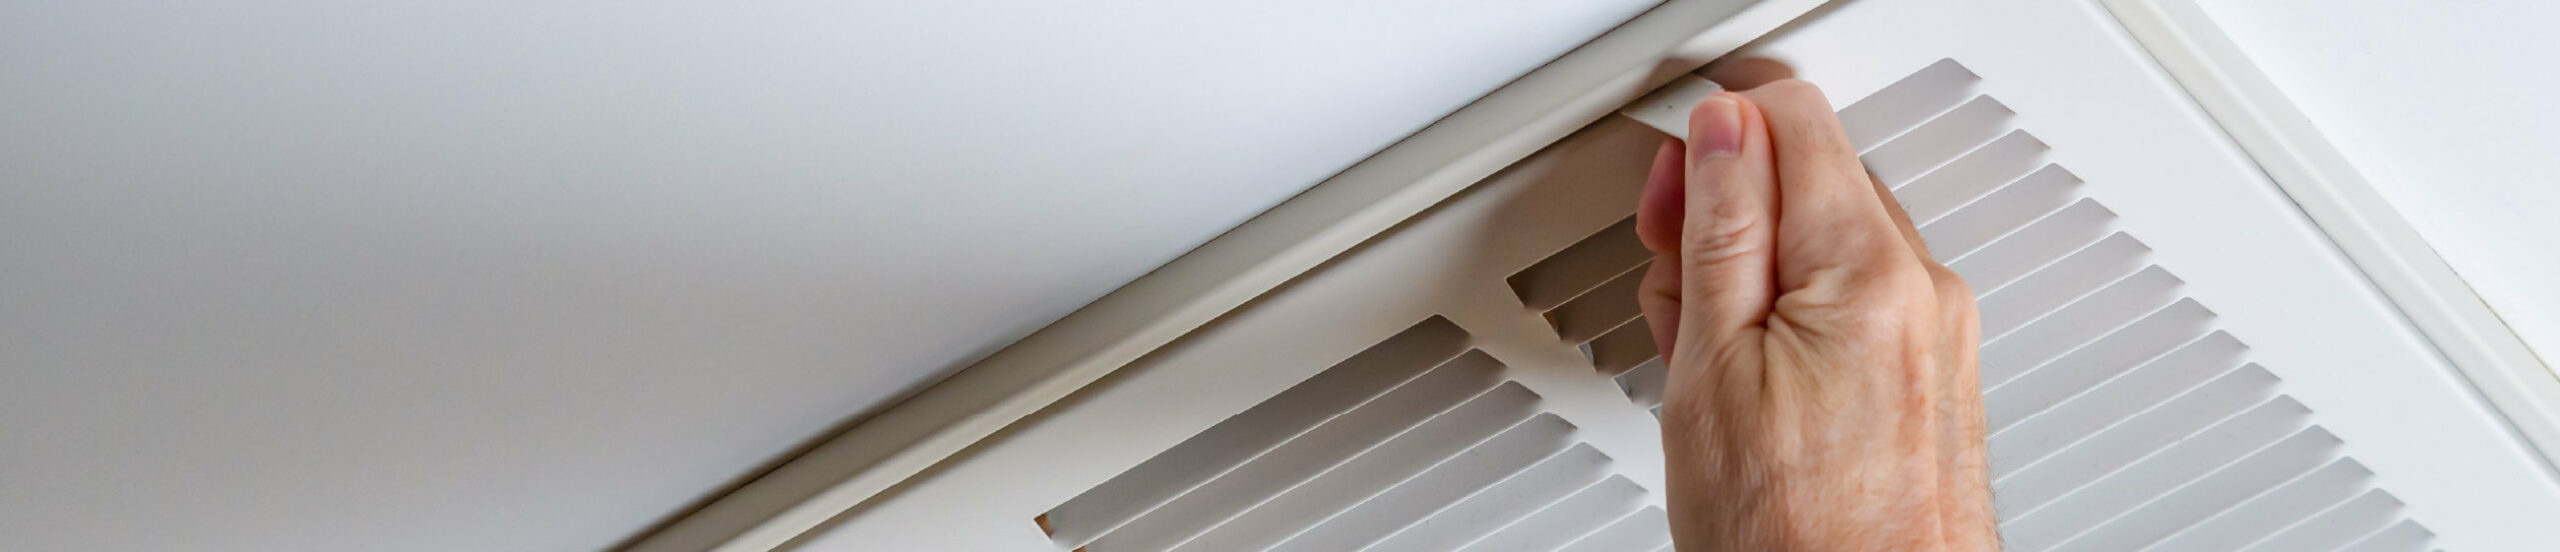 Close up of an air duct, with a hand adjusting the vent guards